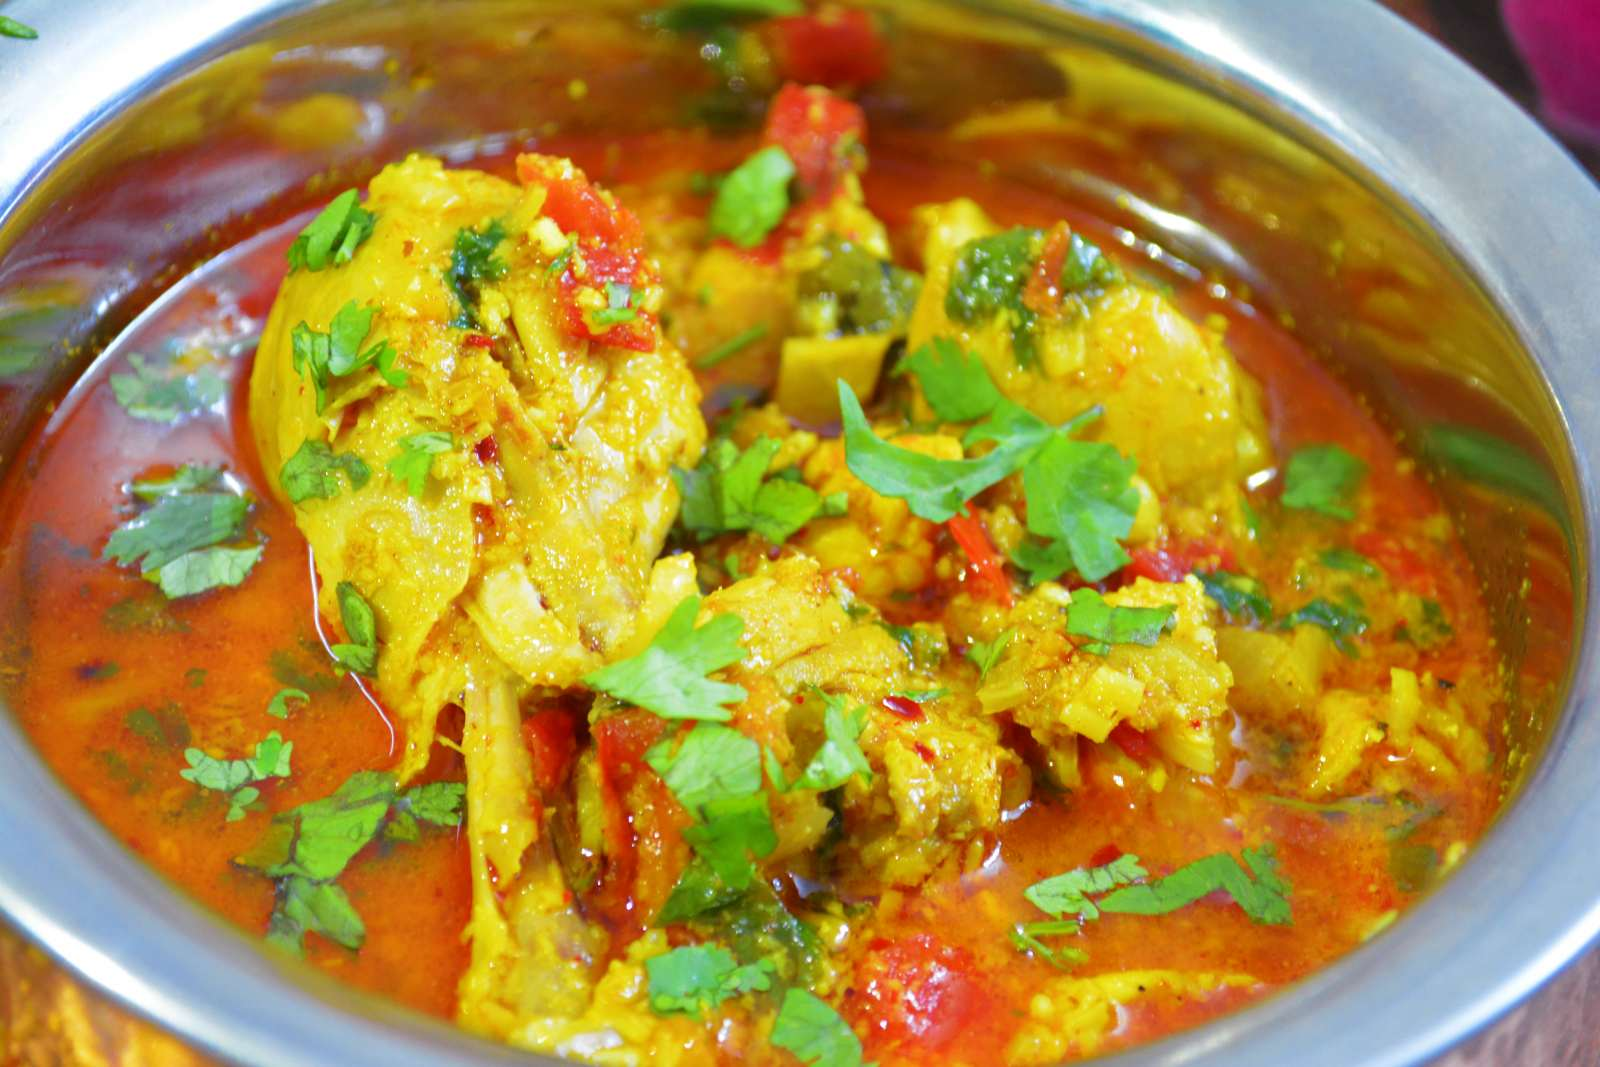 Sindhi style chicken curry recipe by archanas kitchen sindhi style chicken curry recipe forumfinder Choice Image